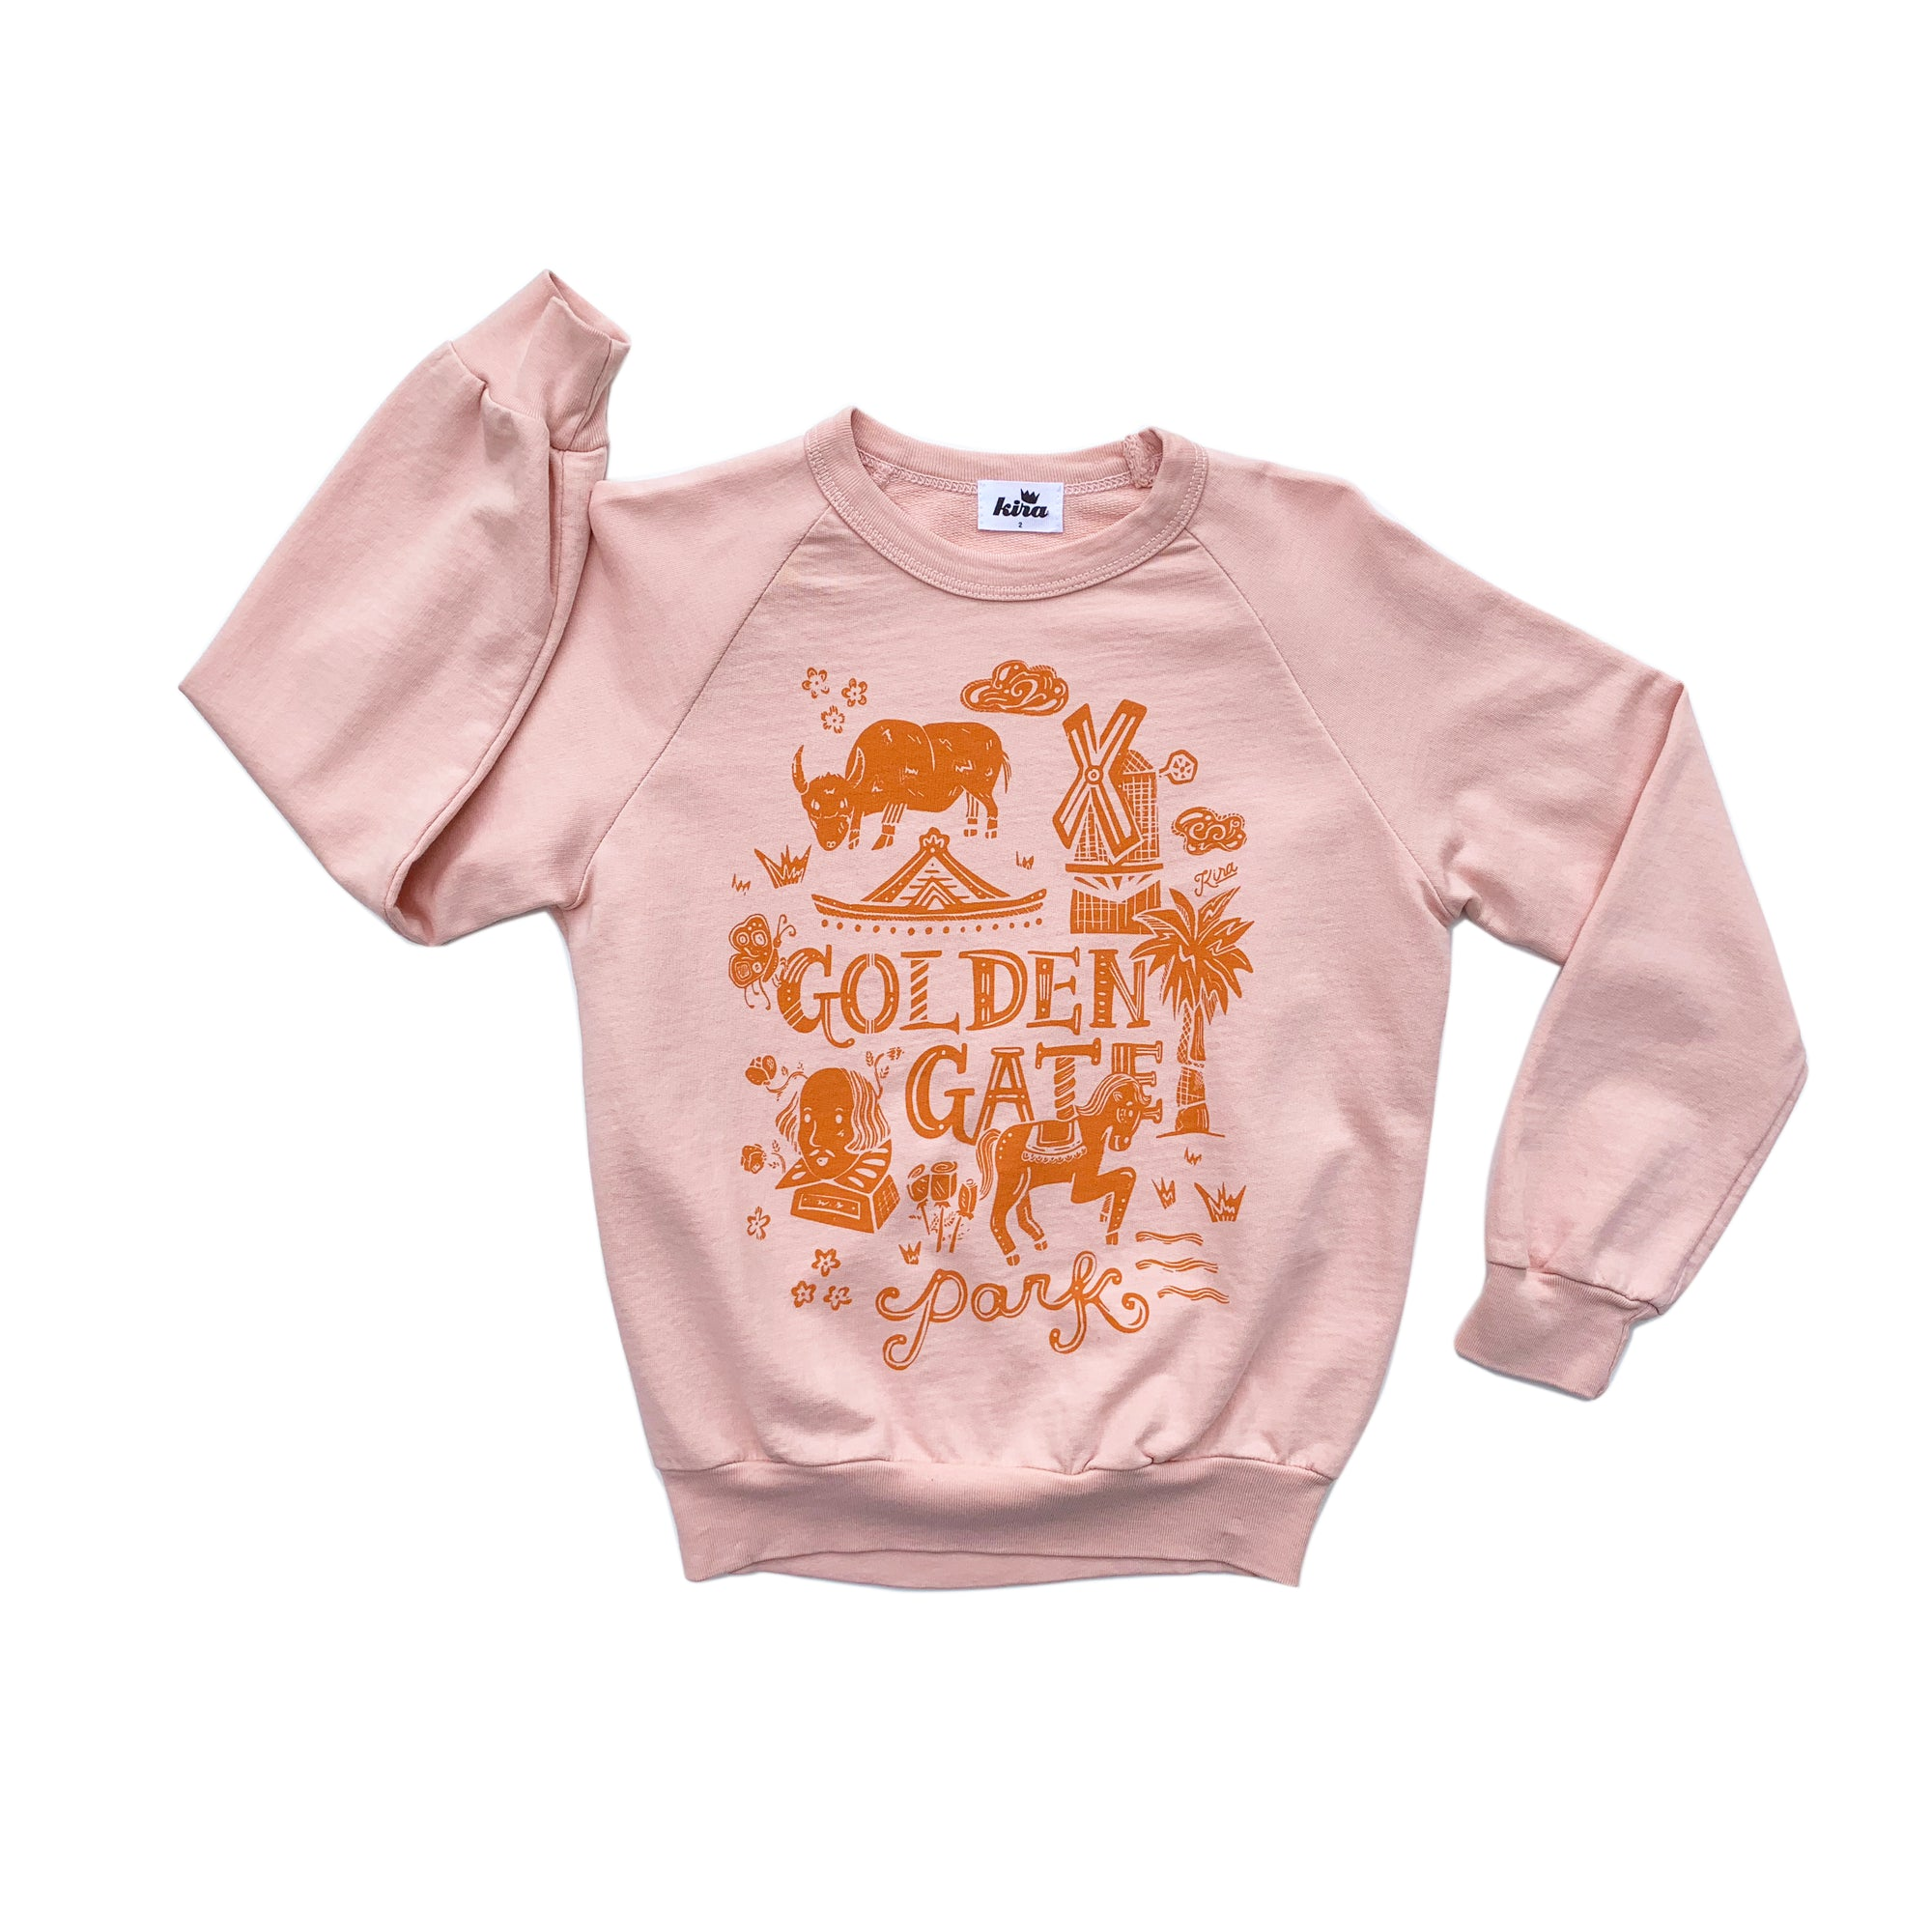 Golden Gate Park Graphic Raglan Sweatshirt, Blush